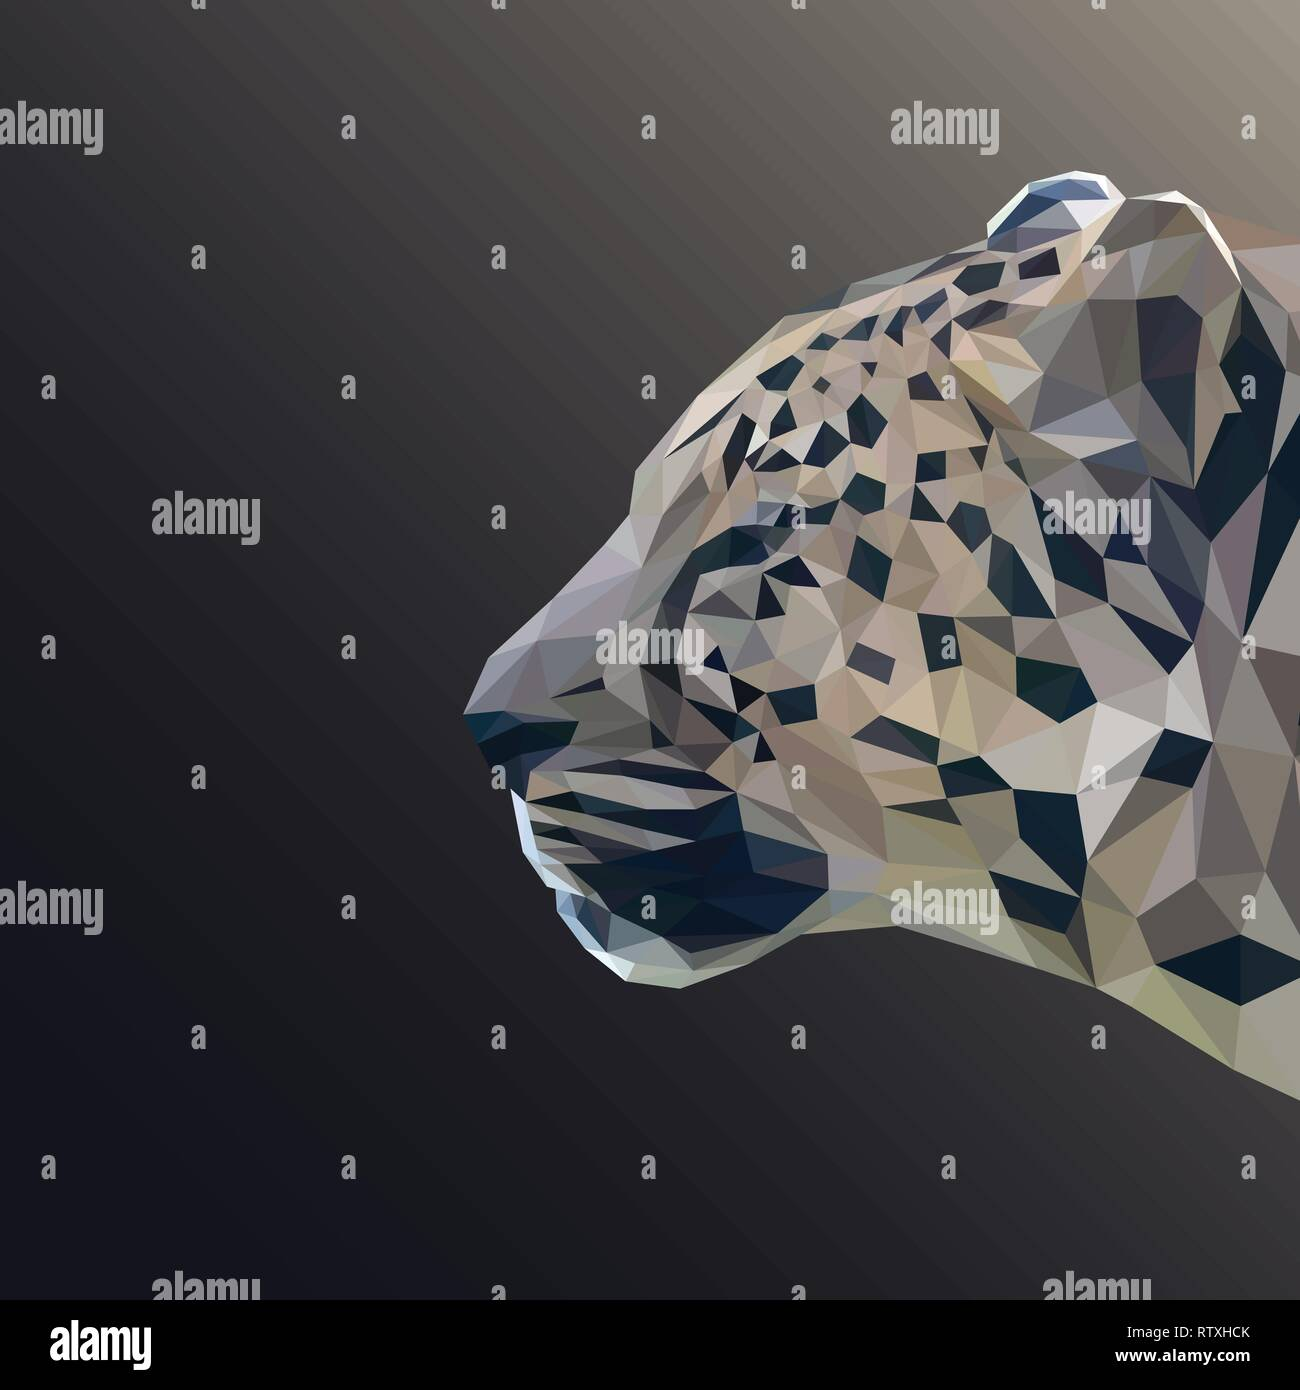 Cheetah cat low poly design. Triangle vector illustration. - Stock Image